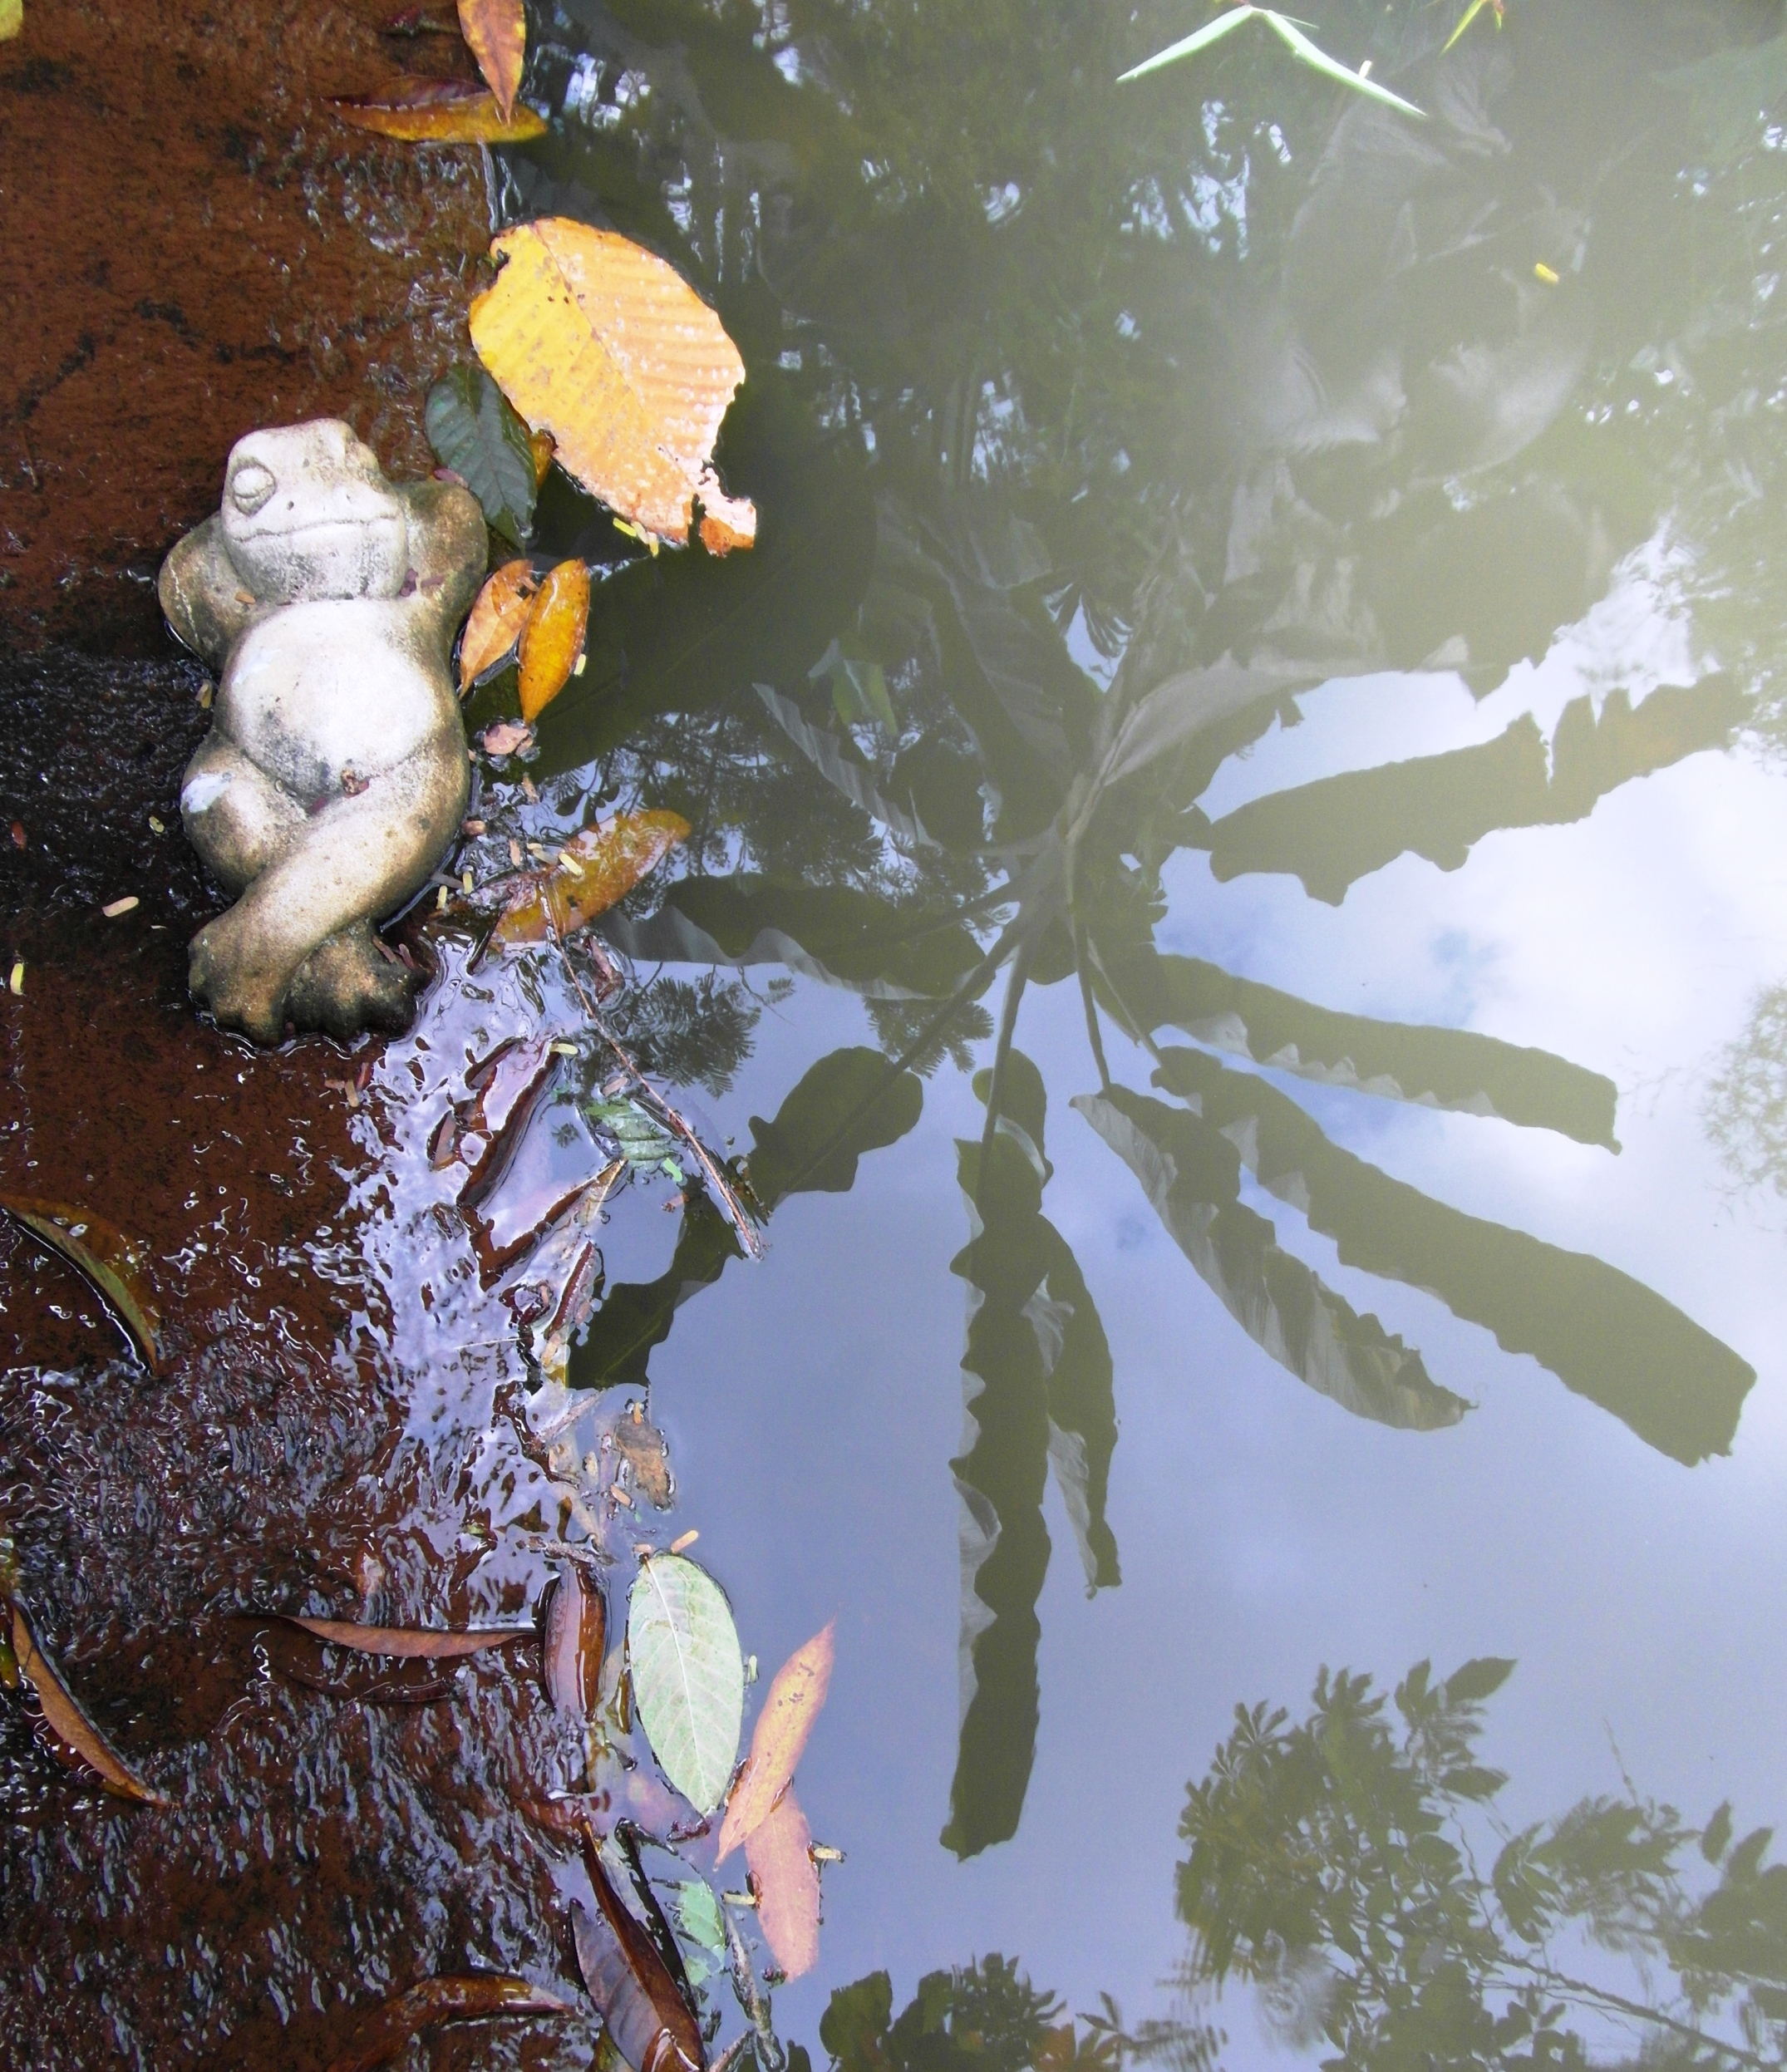 Lazy Frog, Asia, Relaxing, Tropical, Tree, HQ Photo